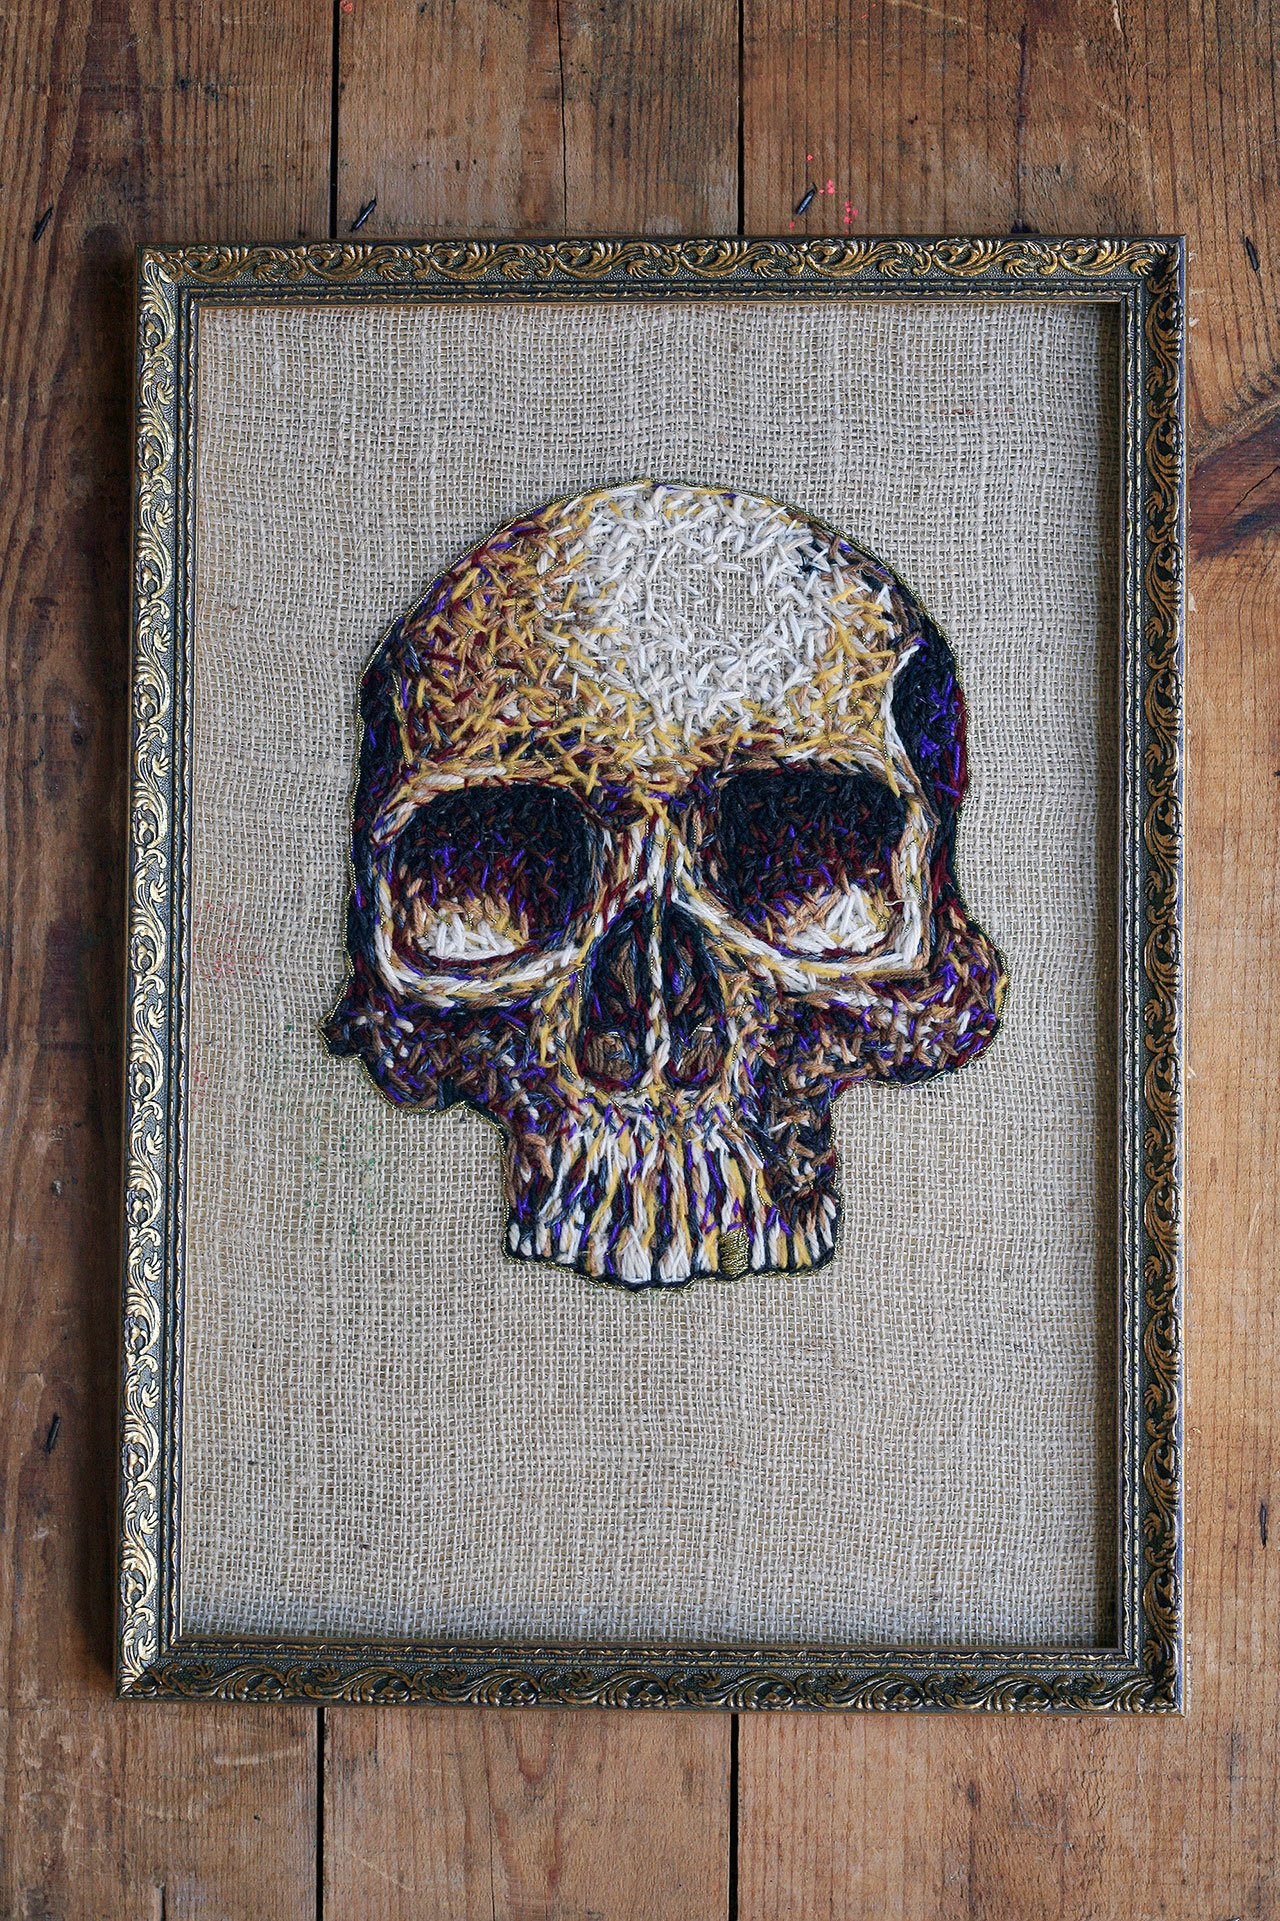 Stitched Images Embroidered Fiber Art by Danielle Clough